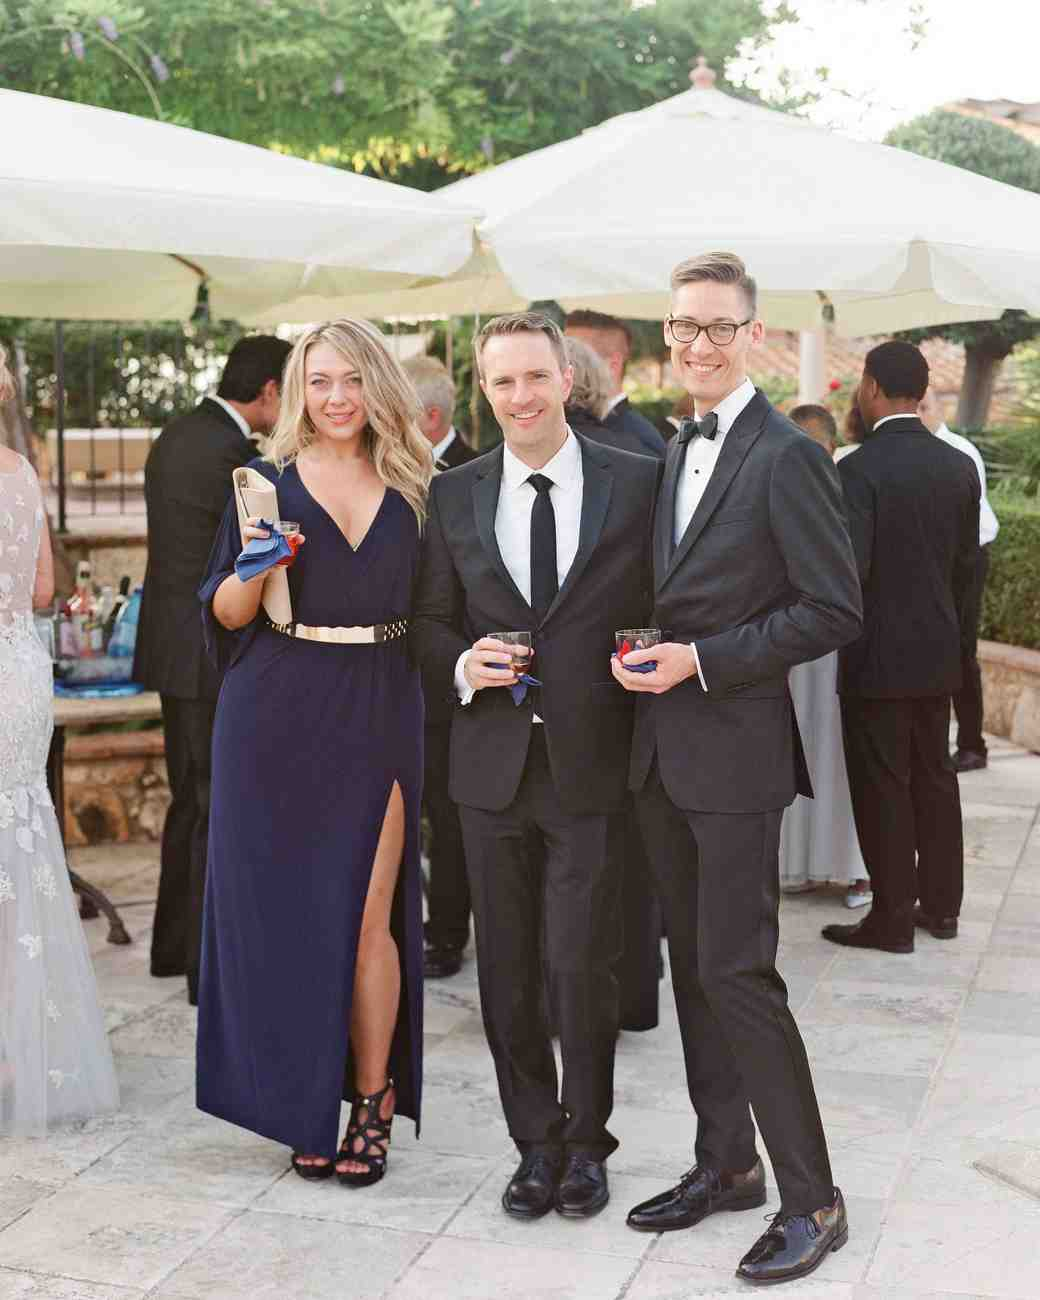 dennis-bryan-wedding-italy-guests-cocktail-hour-071-0559-s112633.jpg